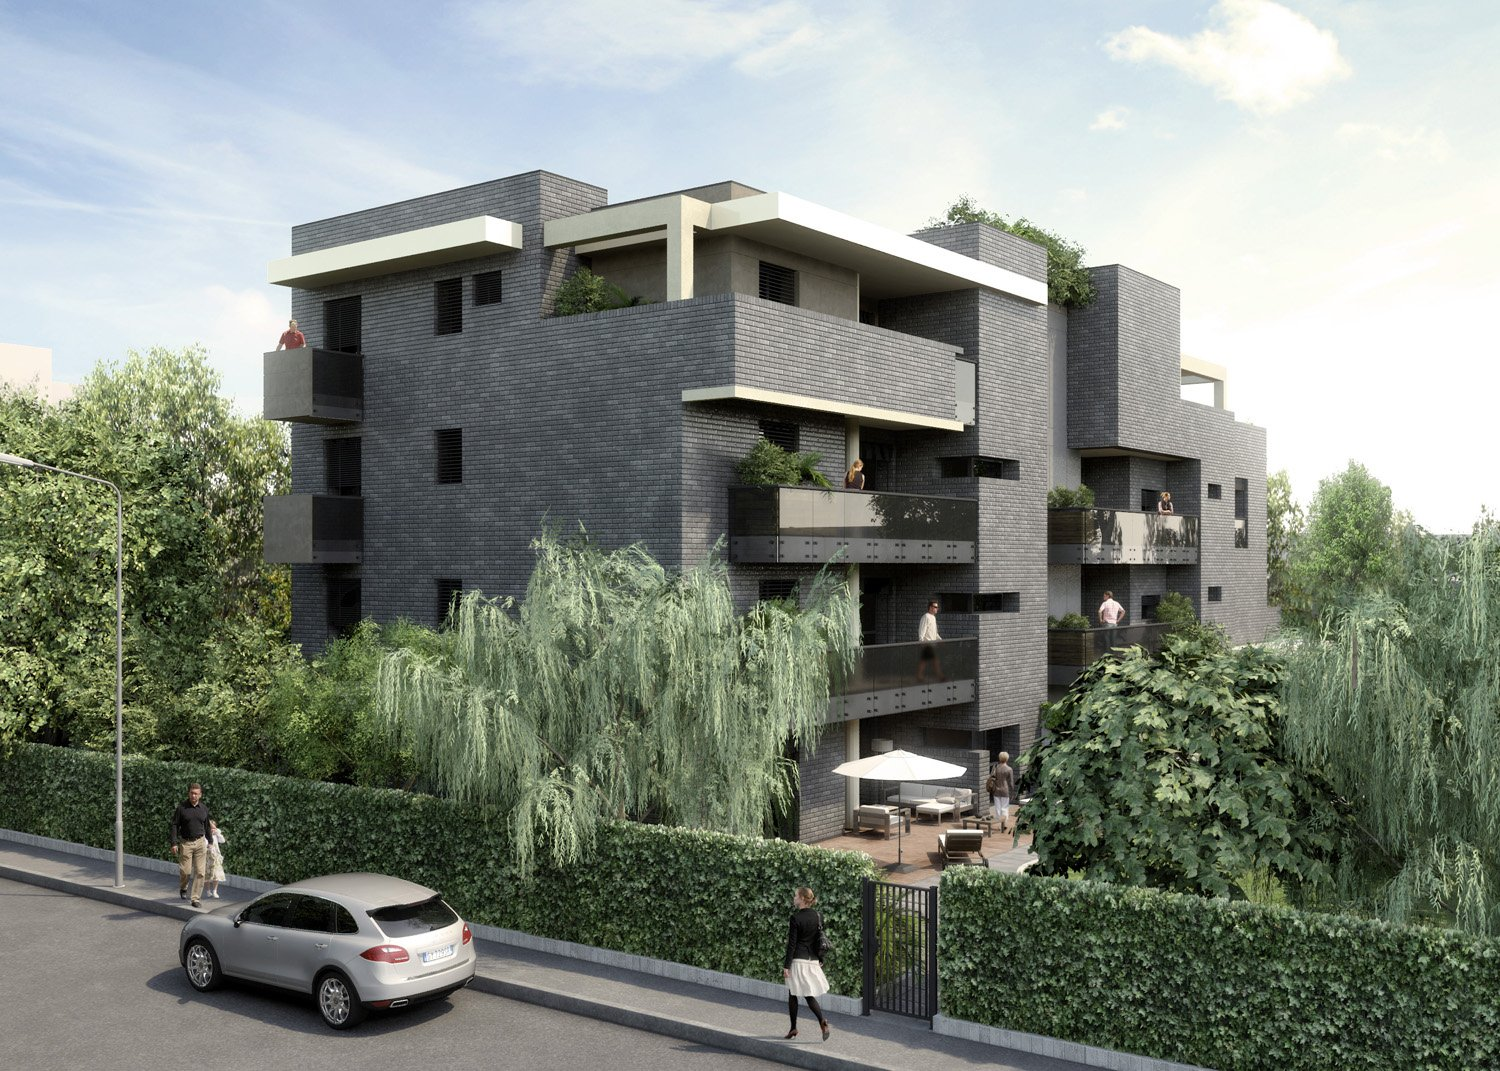 Render photo © 2020 by GBA Studio srl / Gianluca Brini - Architetto Bologna - Via Andrea Costa 202/2 http://www.gbastudio.it/}